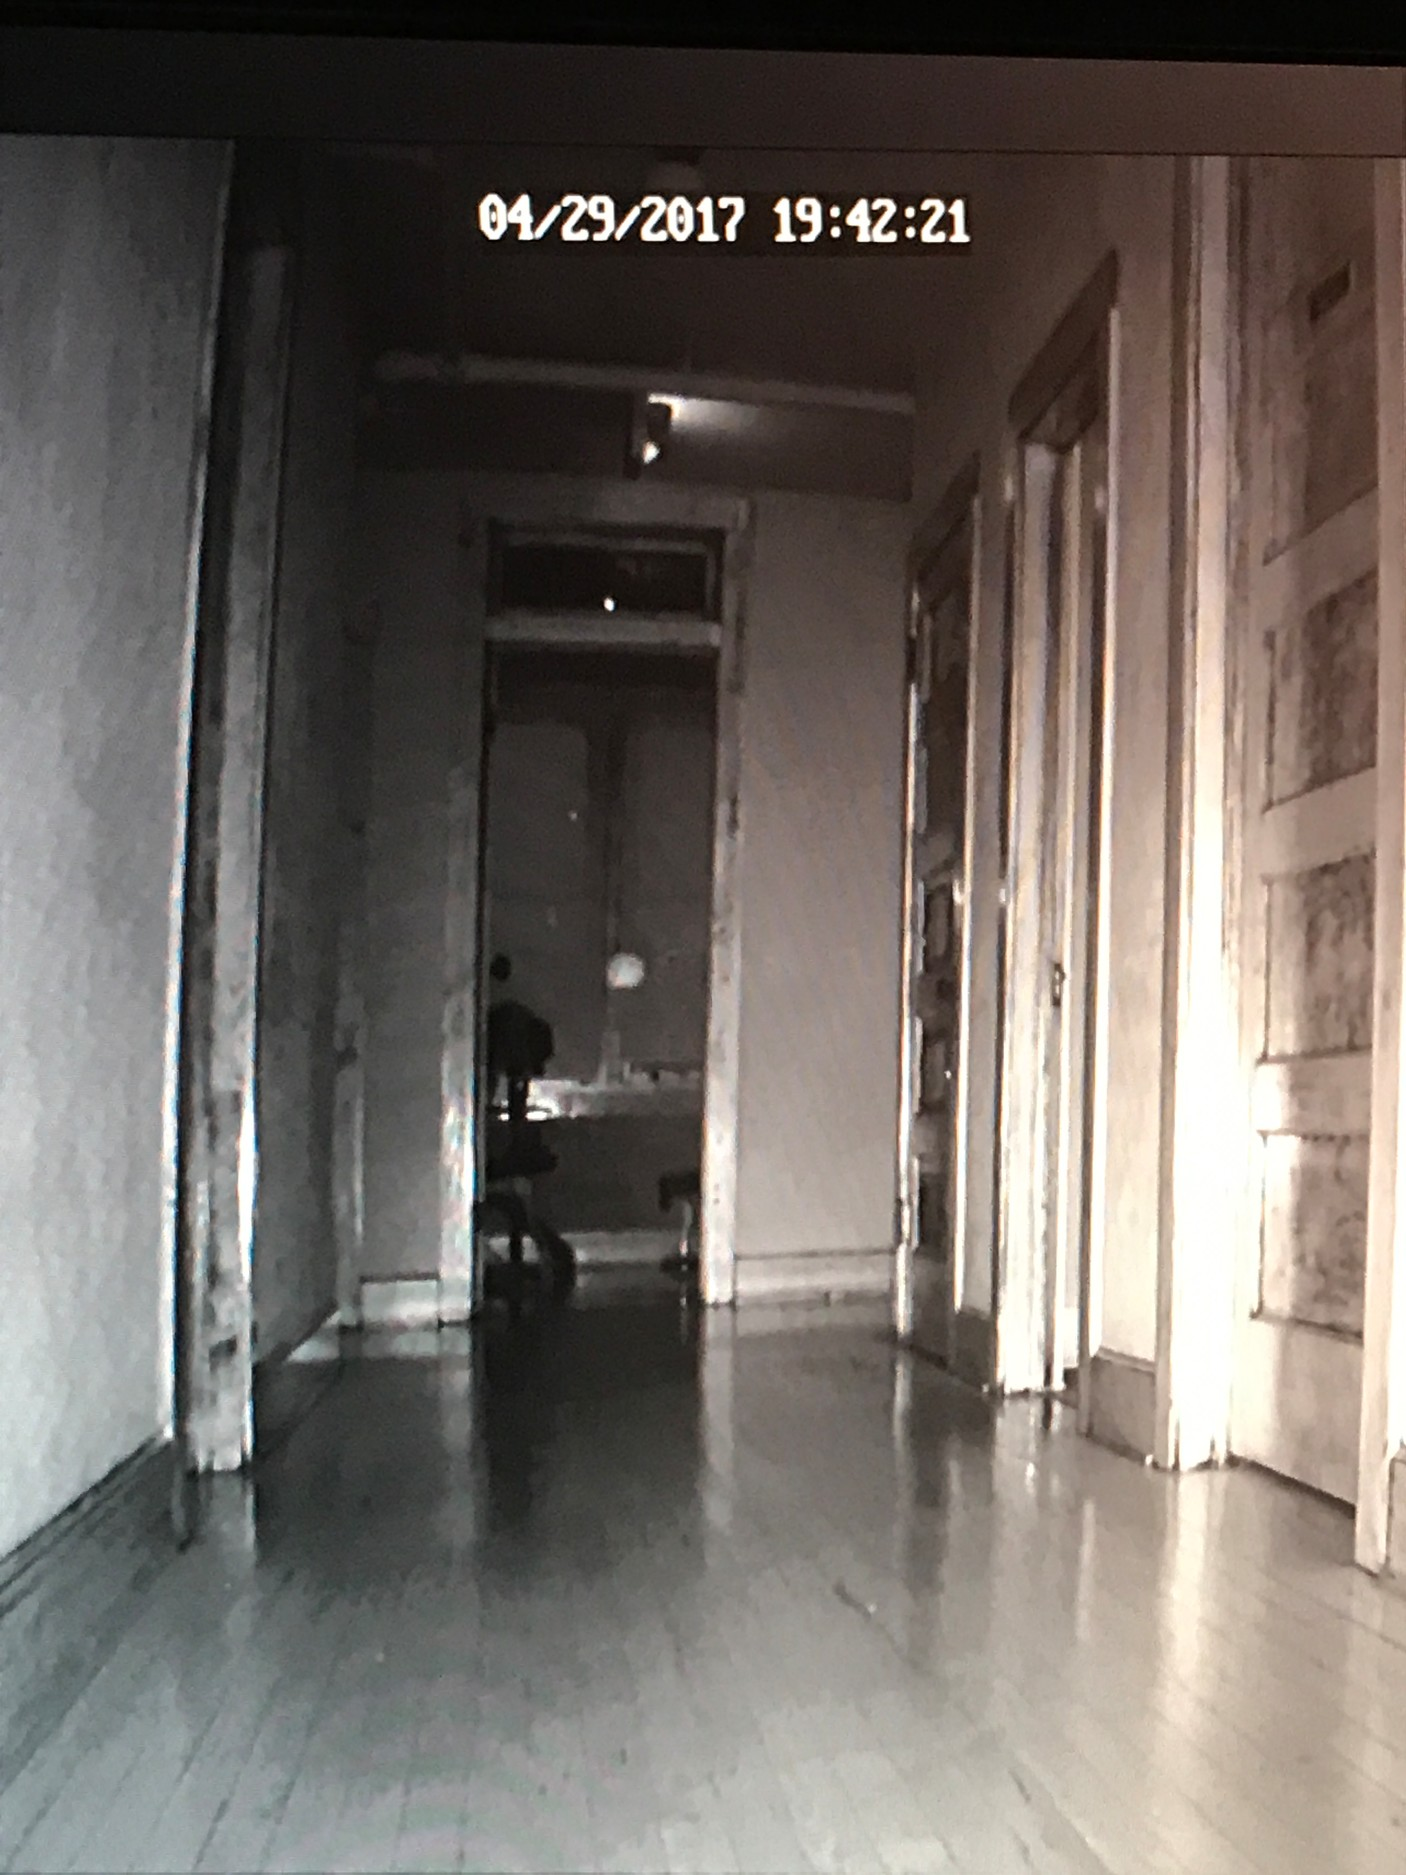 Thanks to the team's equipment, orbs were caught on film. The still above is one such orb that crossed the upstairs hallway from one room to the next.